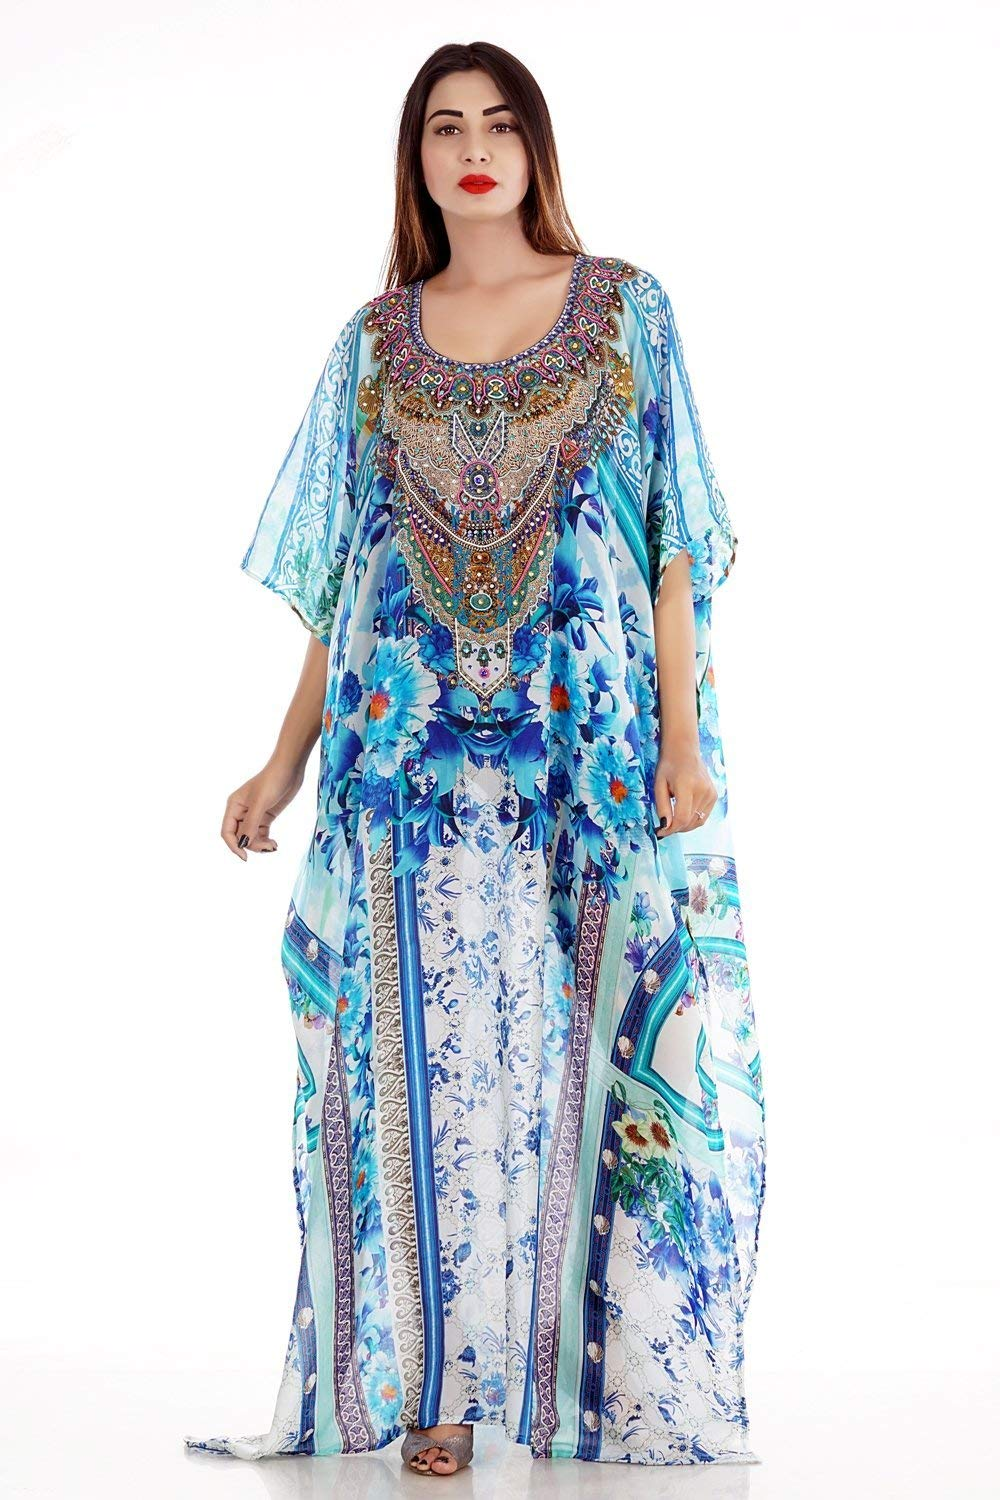 3dca41123d Get Quotations · Beach kaftan dress for woman beaded/beach wear/one piece  jeweled full length kaftan